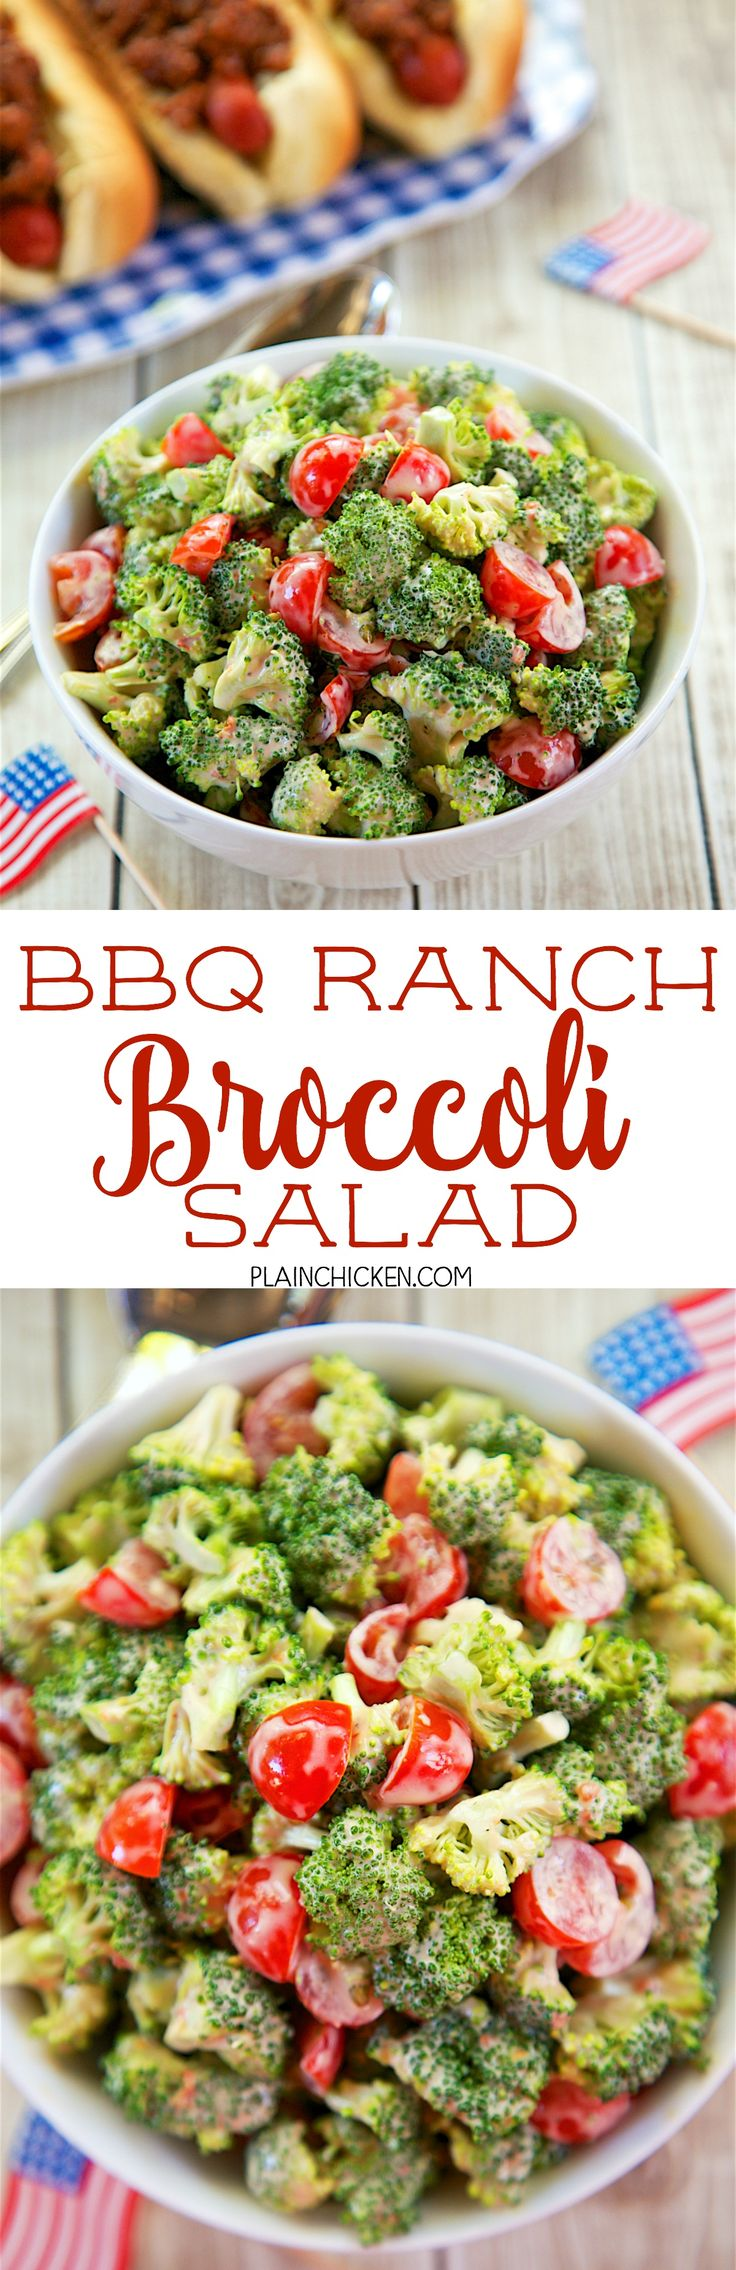 BBQ Ranch Broccoli Salad - only 3 ingredients! Everyone RAVES about this crazy…